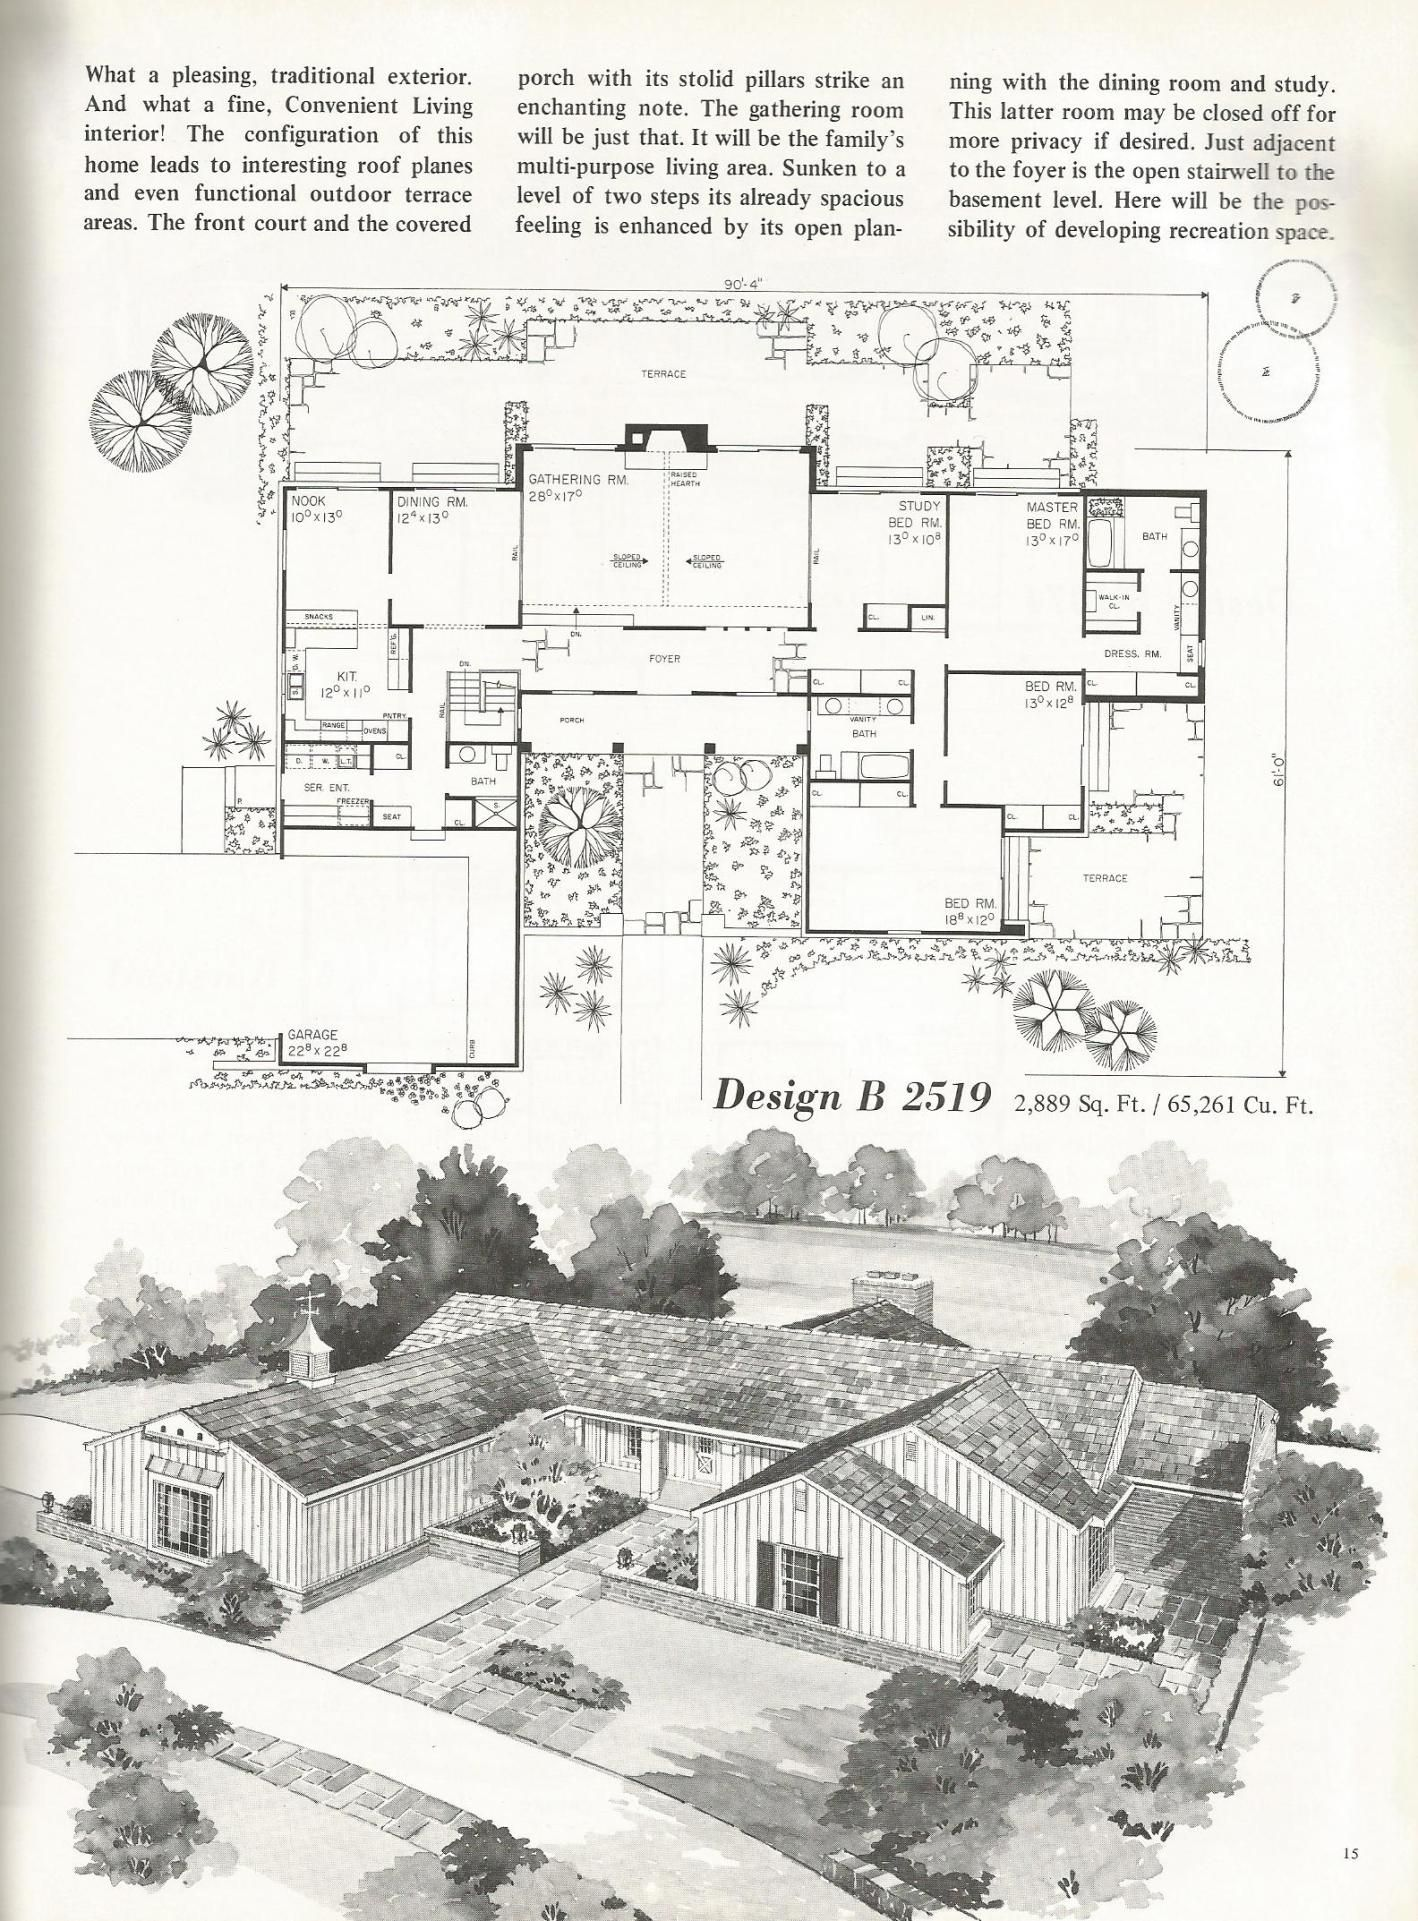 e5366e554bef30dd92096f87f261095c U Shaped House Plans Mid Century Modern Ranch on cape cod ranch house plans, mid century ranch doors, mid century ranch exteriors, vintage ranch house plans, mid century atomic ranch, mid century ranch homes,